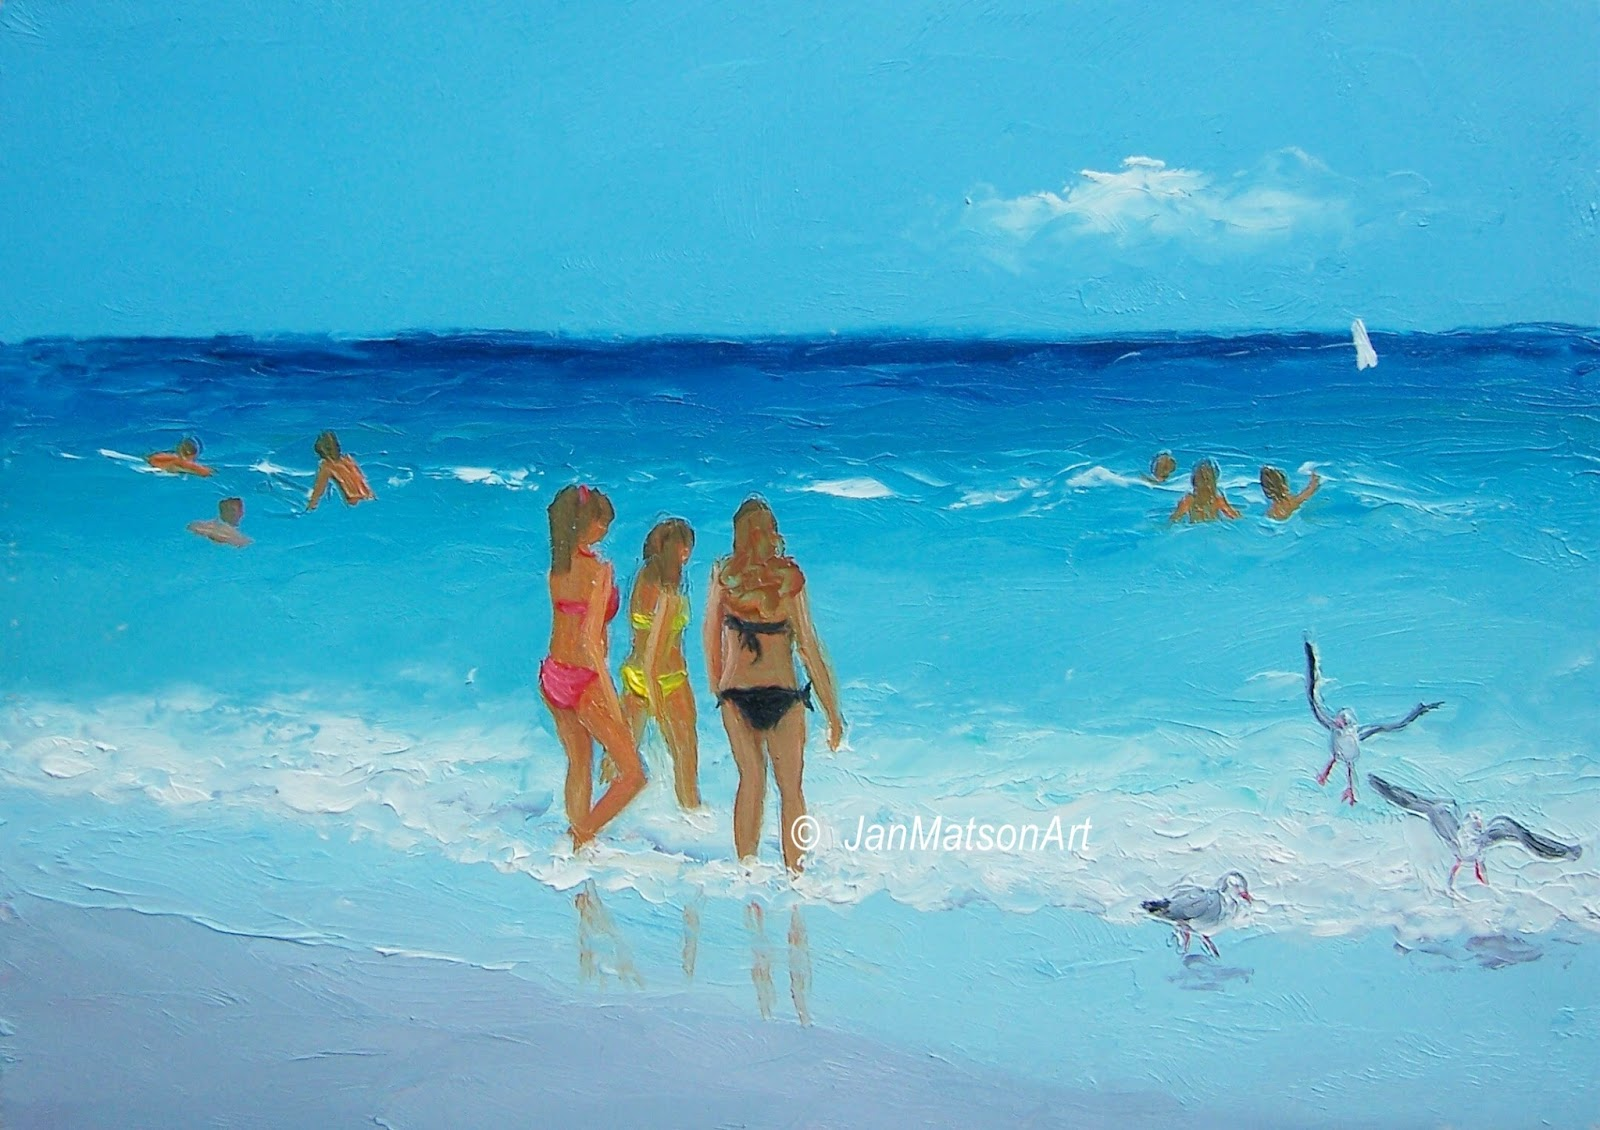 jan matson etsy art: etsy art, beach scenes 'bikini girls'